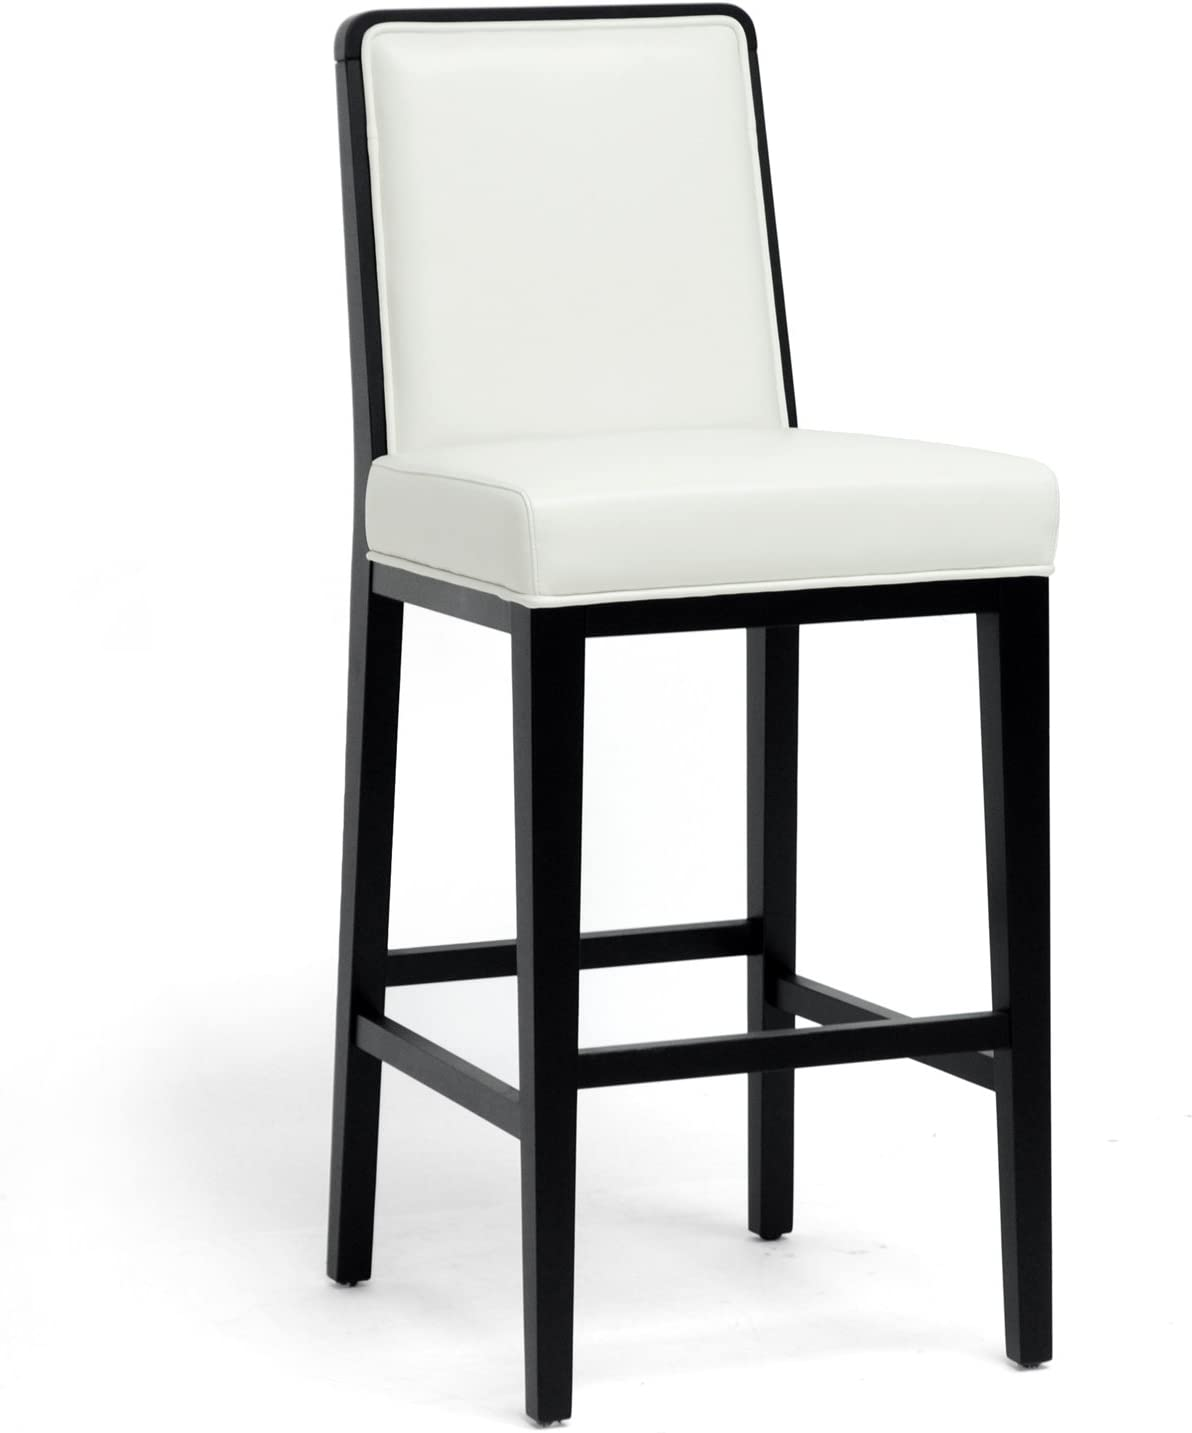 Baxton Studio Theia Black Wood and Cream Leather Modern Bar Stool